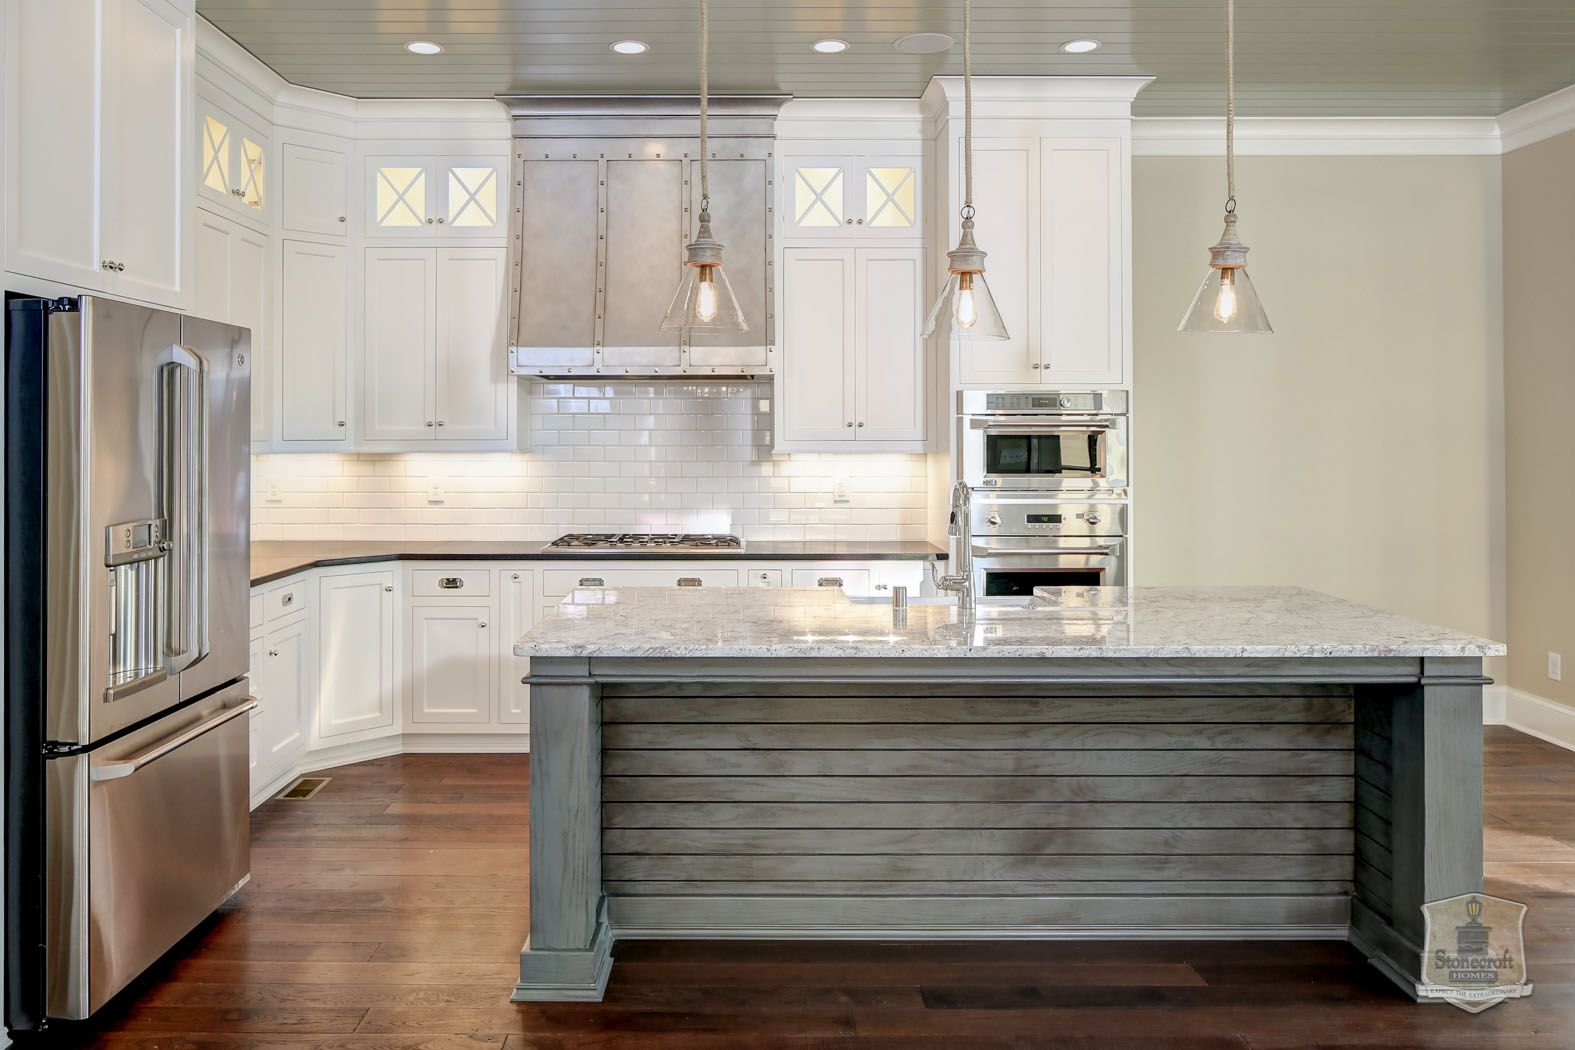 Stonecroft homes the gq louisville custom builder for Kitchen remodeling louisville ky